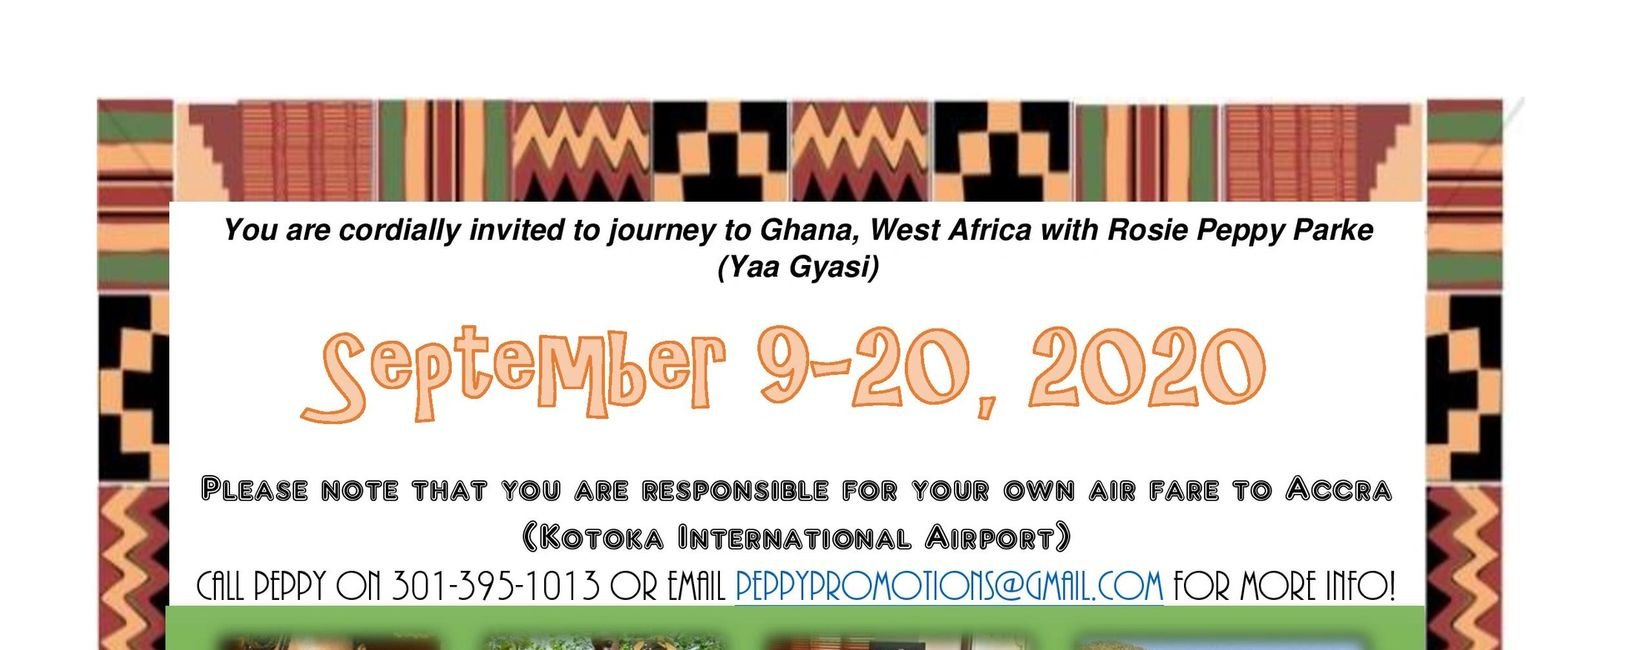 Journey to Ghana from September 9-20, 2020 with Rosie Peppy Parke and The Give Black Foundation.